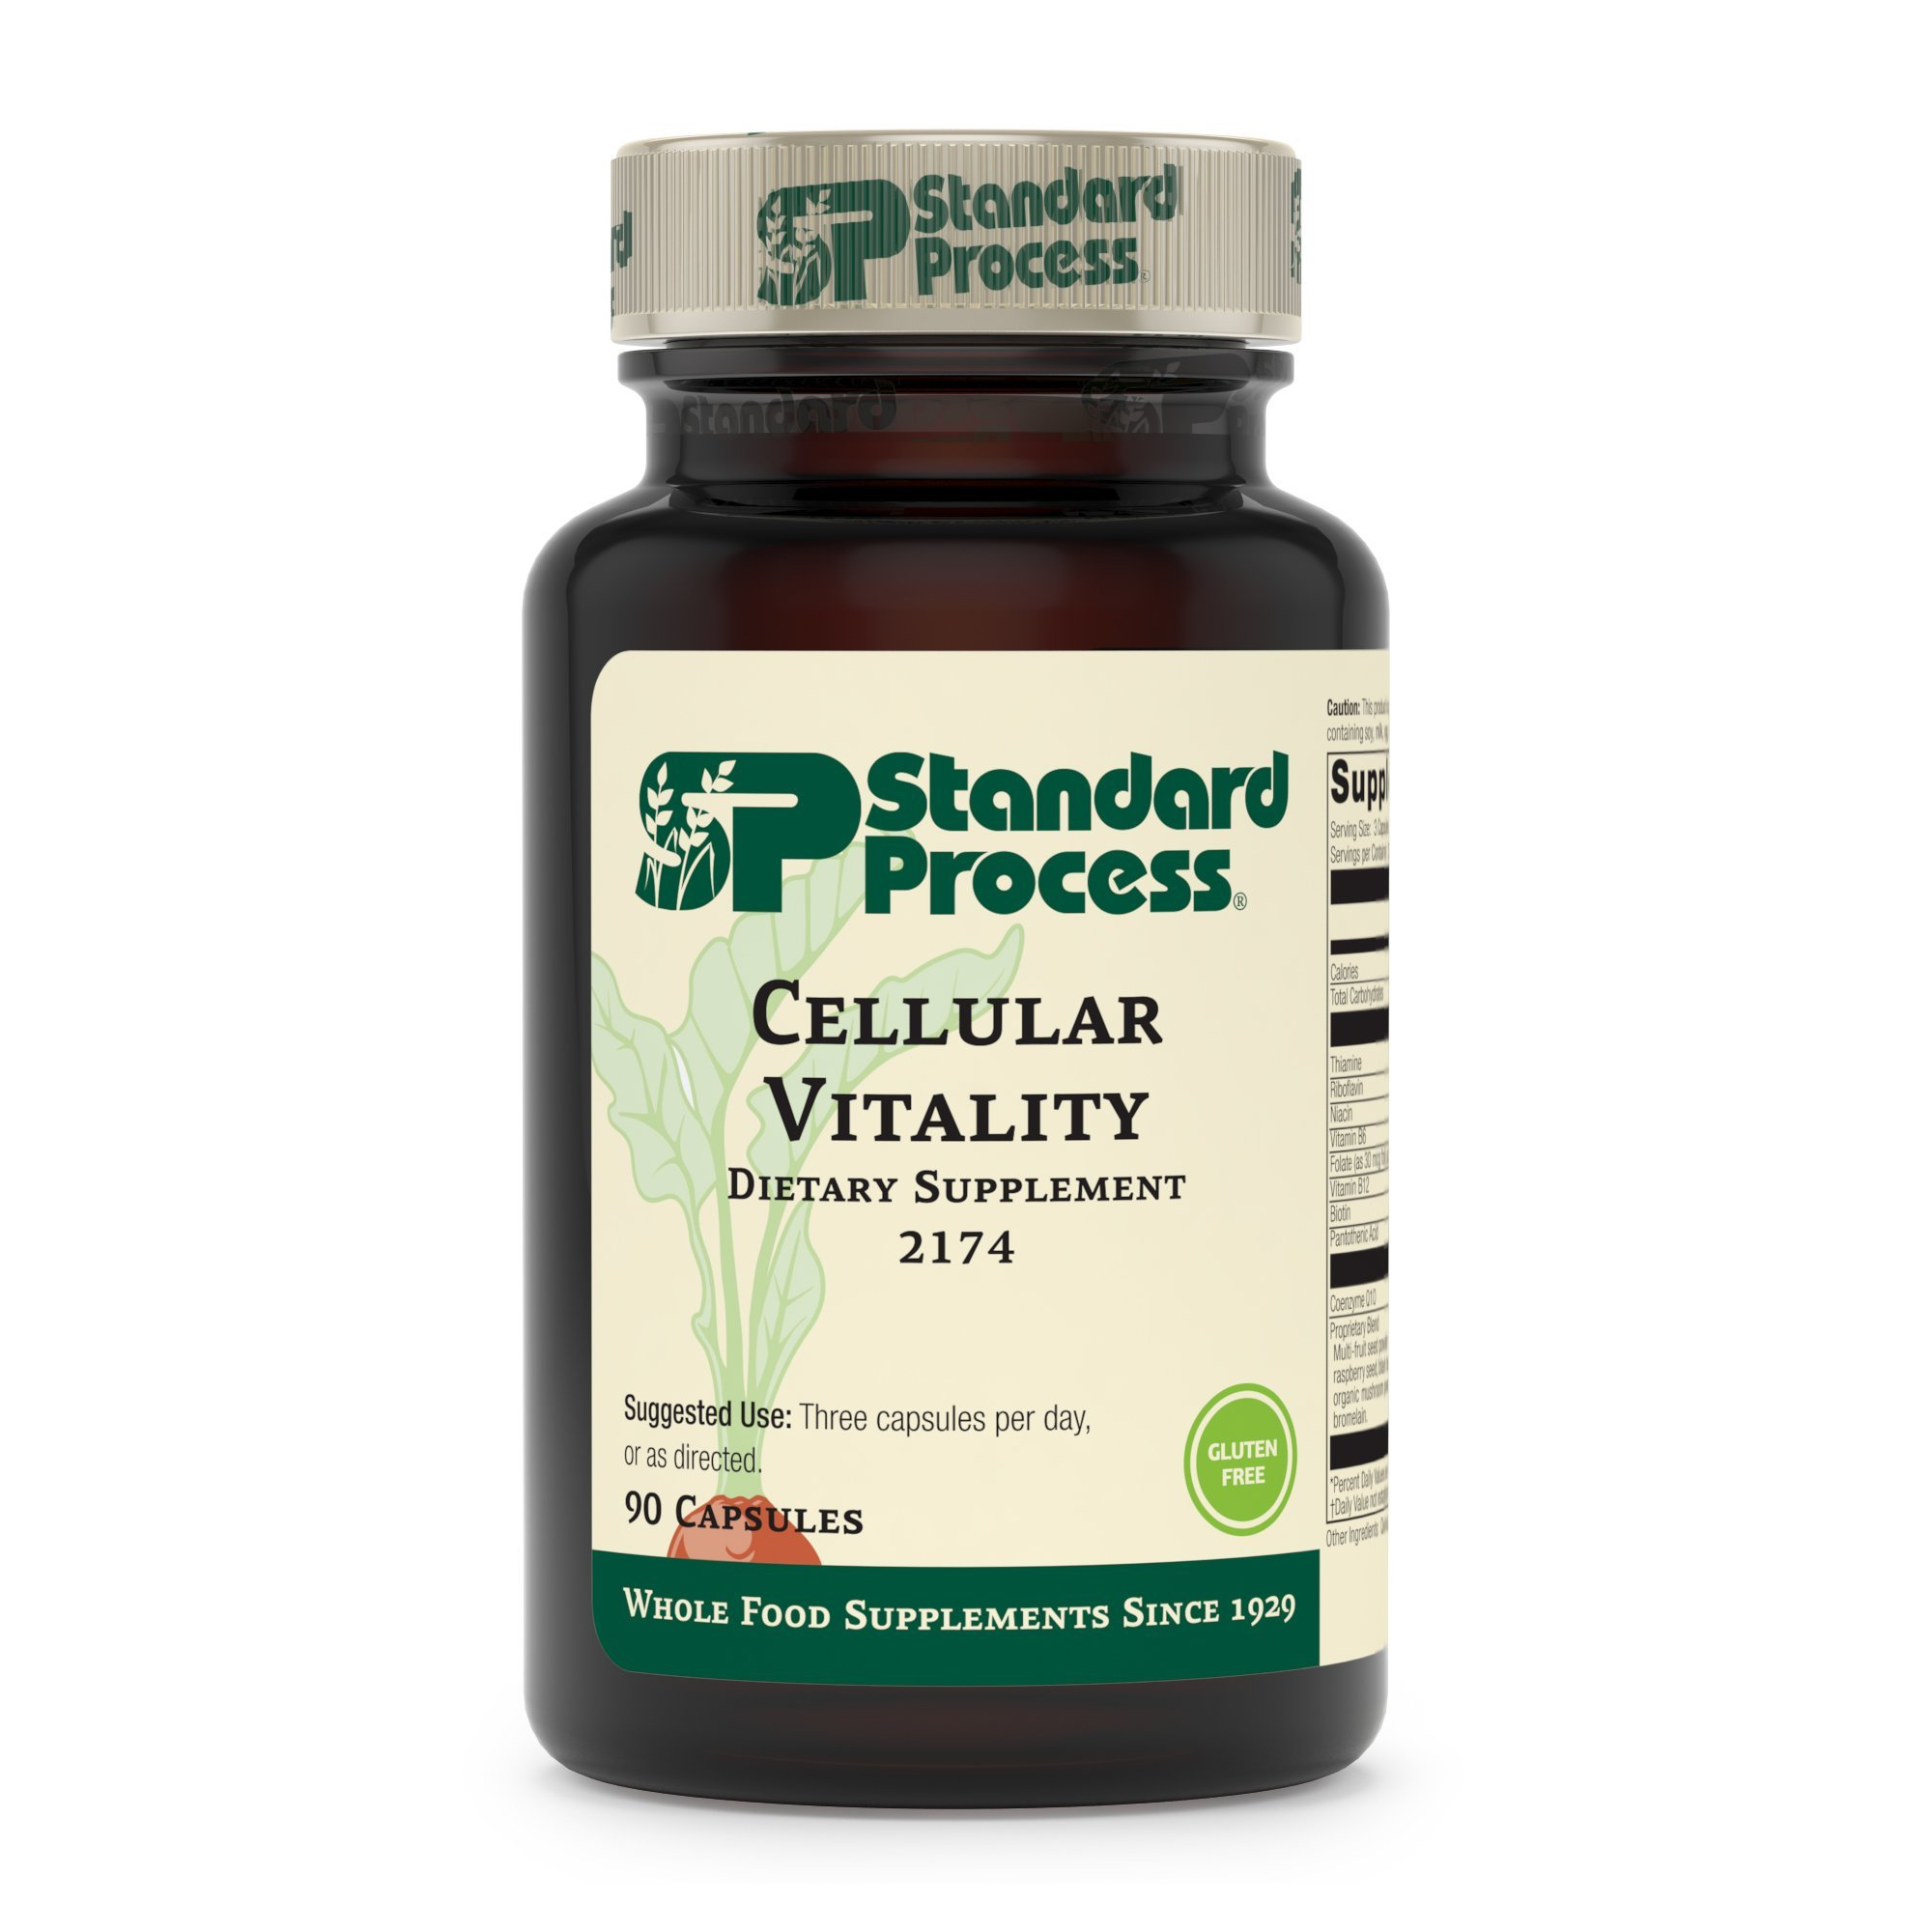 Standard Process - Cellular Vitality - Vitamin B1, B2, B6, Folate, B12, Biotin, CoQ10, Supports Healthy Cellular Processes and Provides Antioxidant Activity, Gluten Free and Vegetarian - 90 Capsules by Standard Process (Image #2)